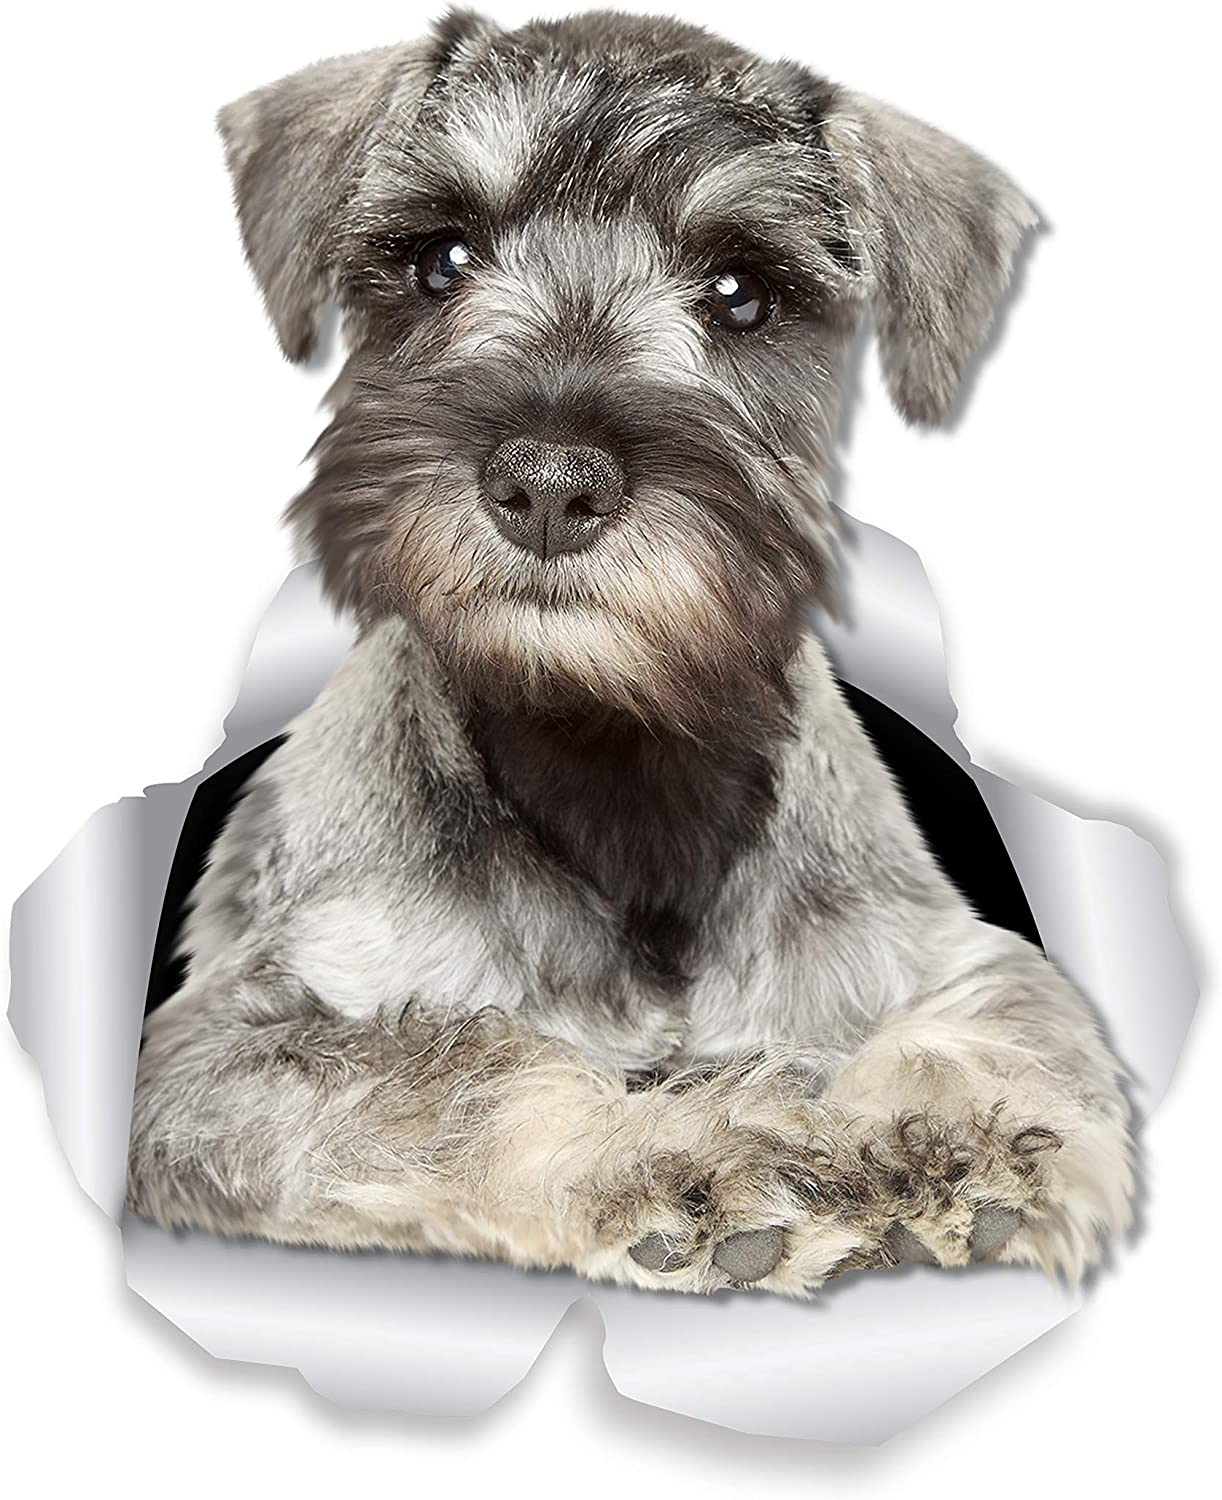 Winston & Bear Curious Schnauzer Dog Wall Decals - 2 Pack - Miniature Schnauzer Dog Toilet Sticker - 3D Dog Car Window and Bumper Sticker - Retail Packaged Dog Lover Gifts